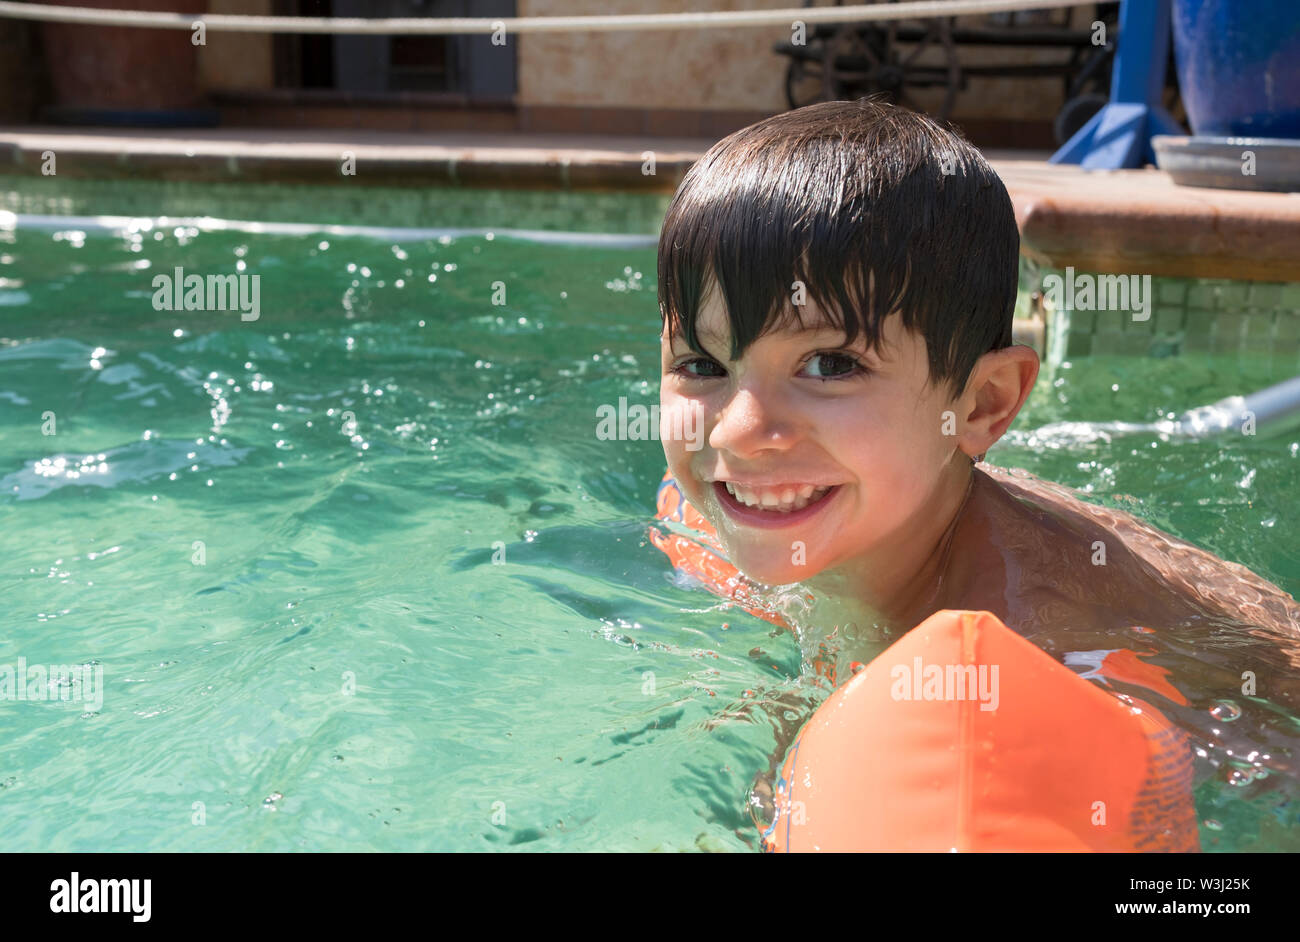 Boy wearing arm floats in a swimming pool Stock Photo